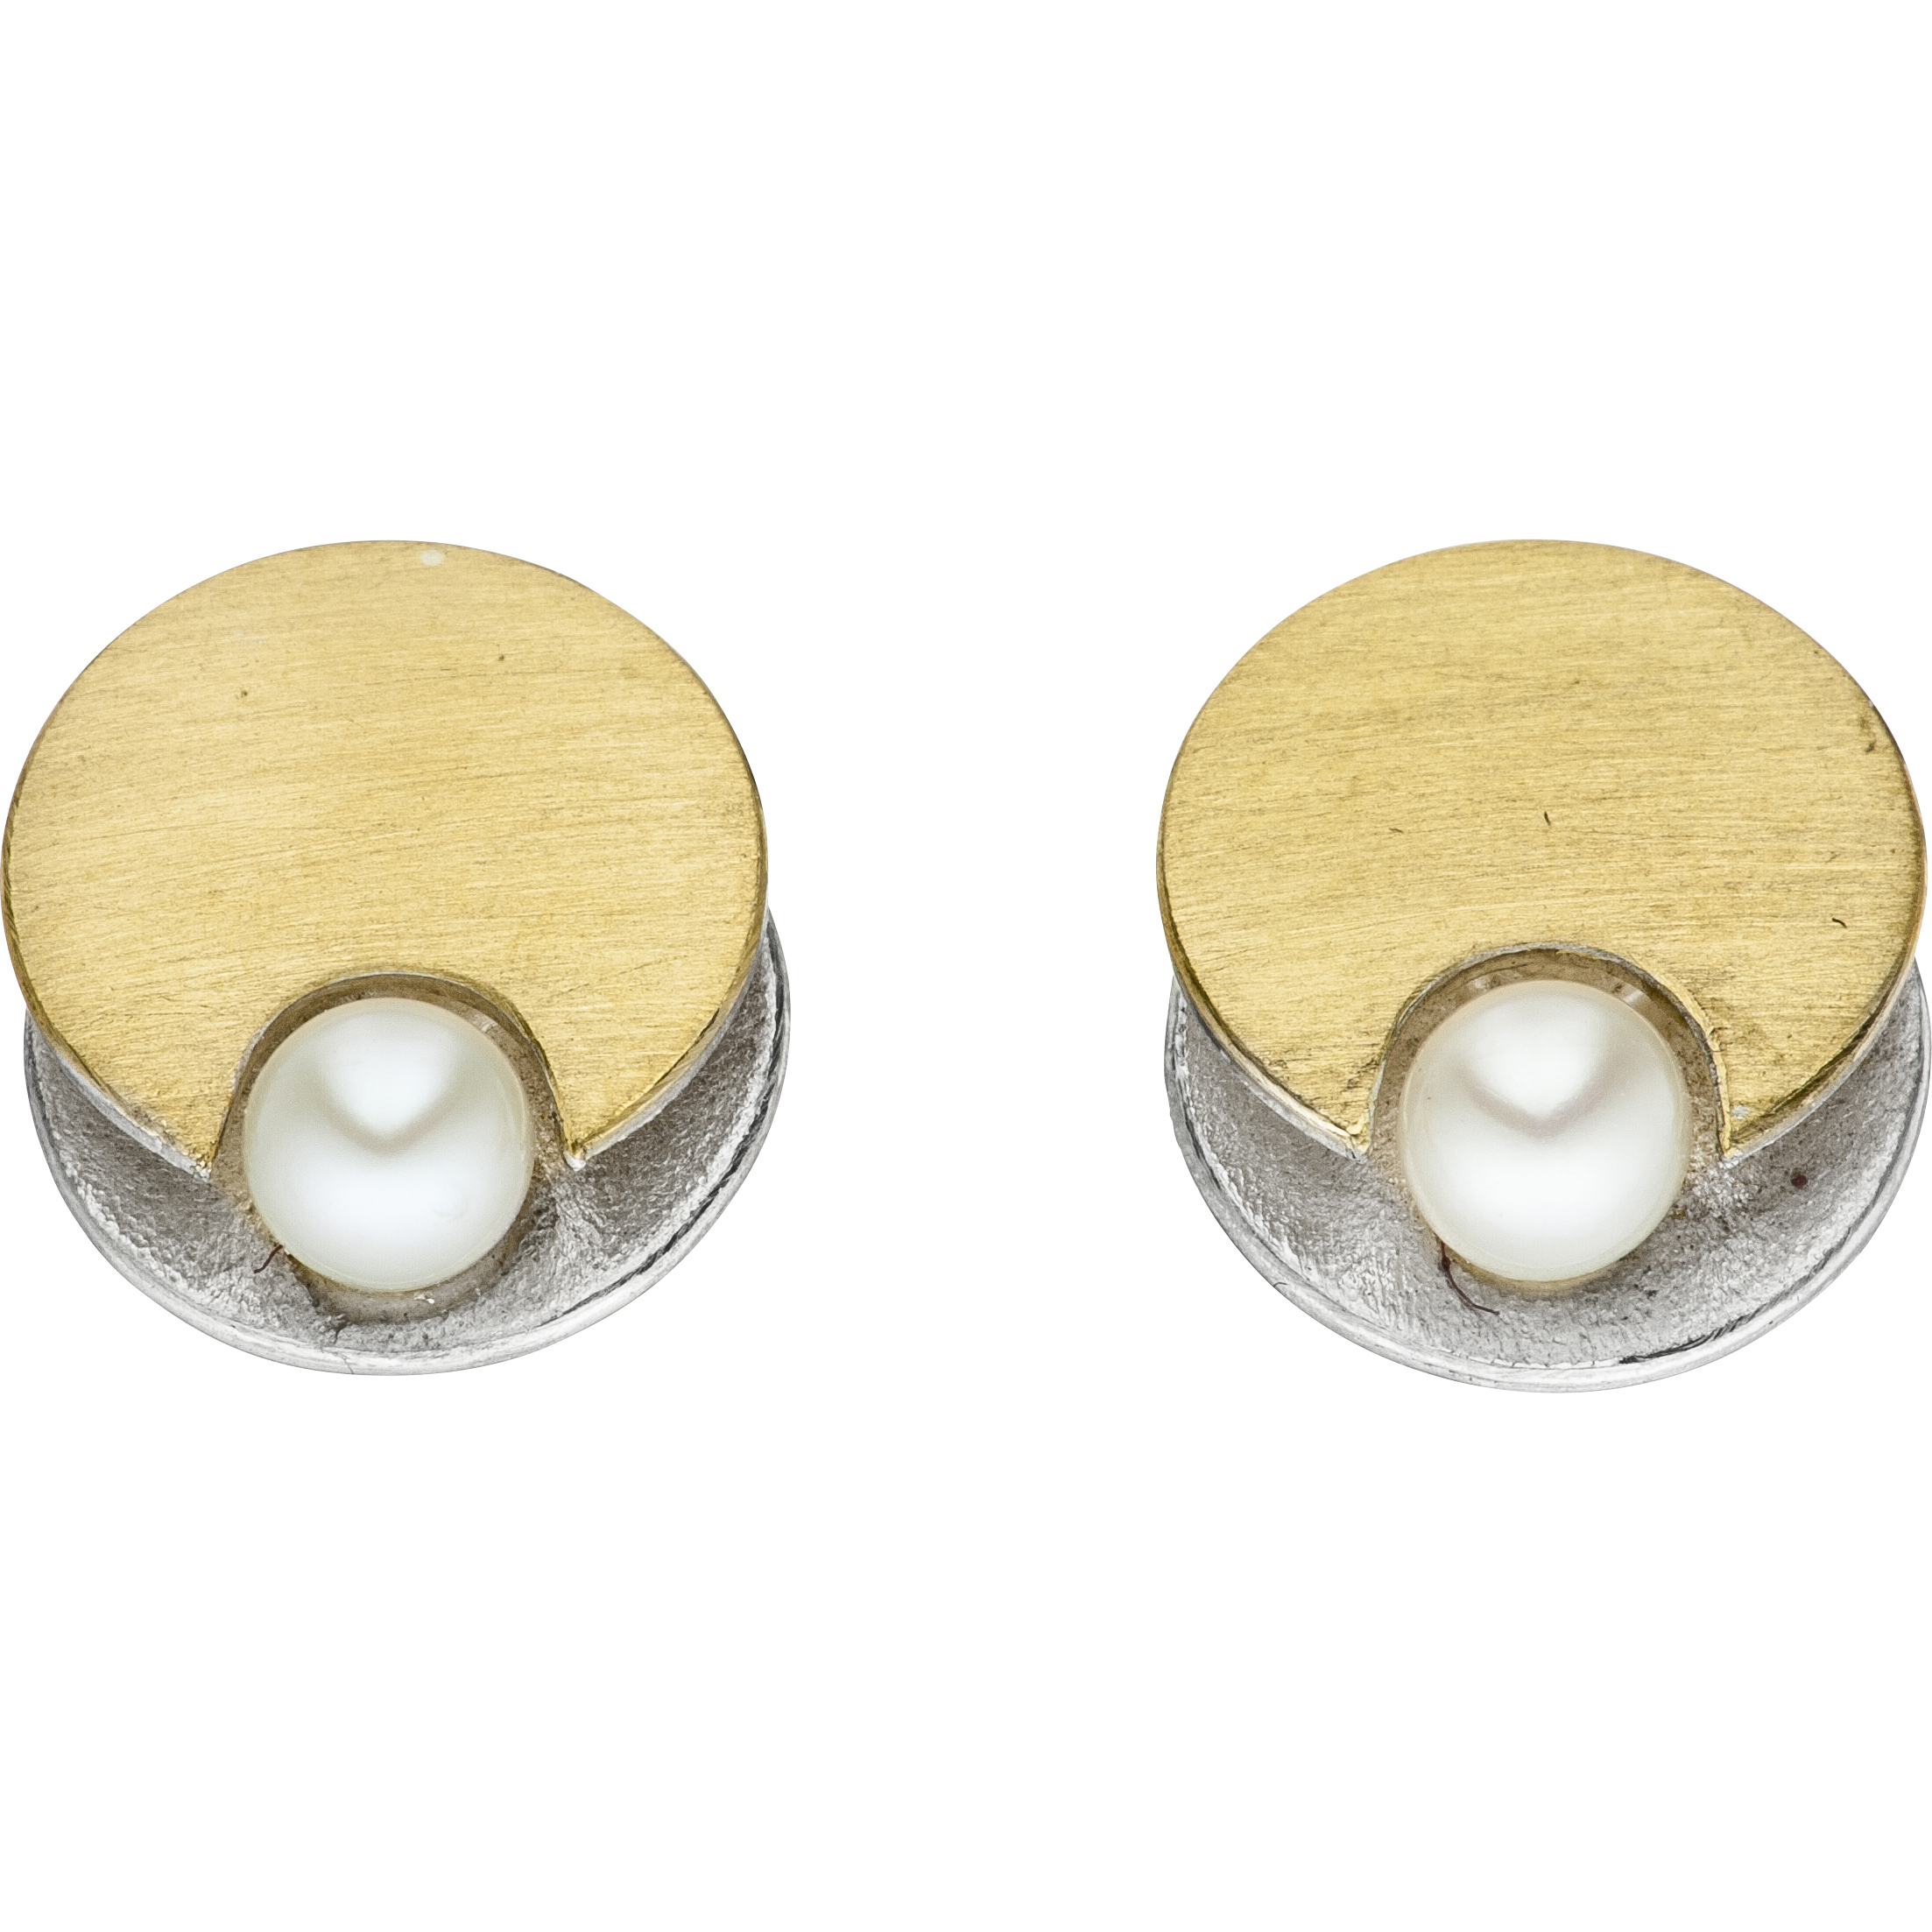 Manu Gold & Silver Disk Studs, With Pearls